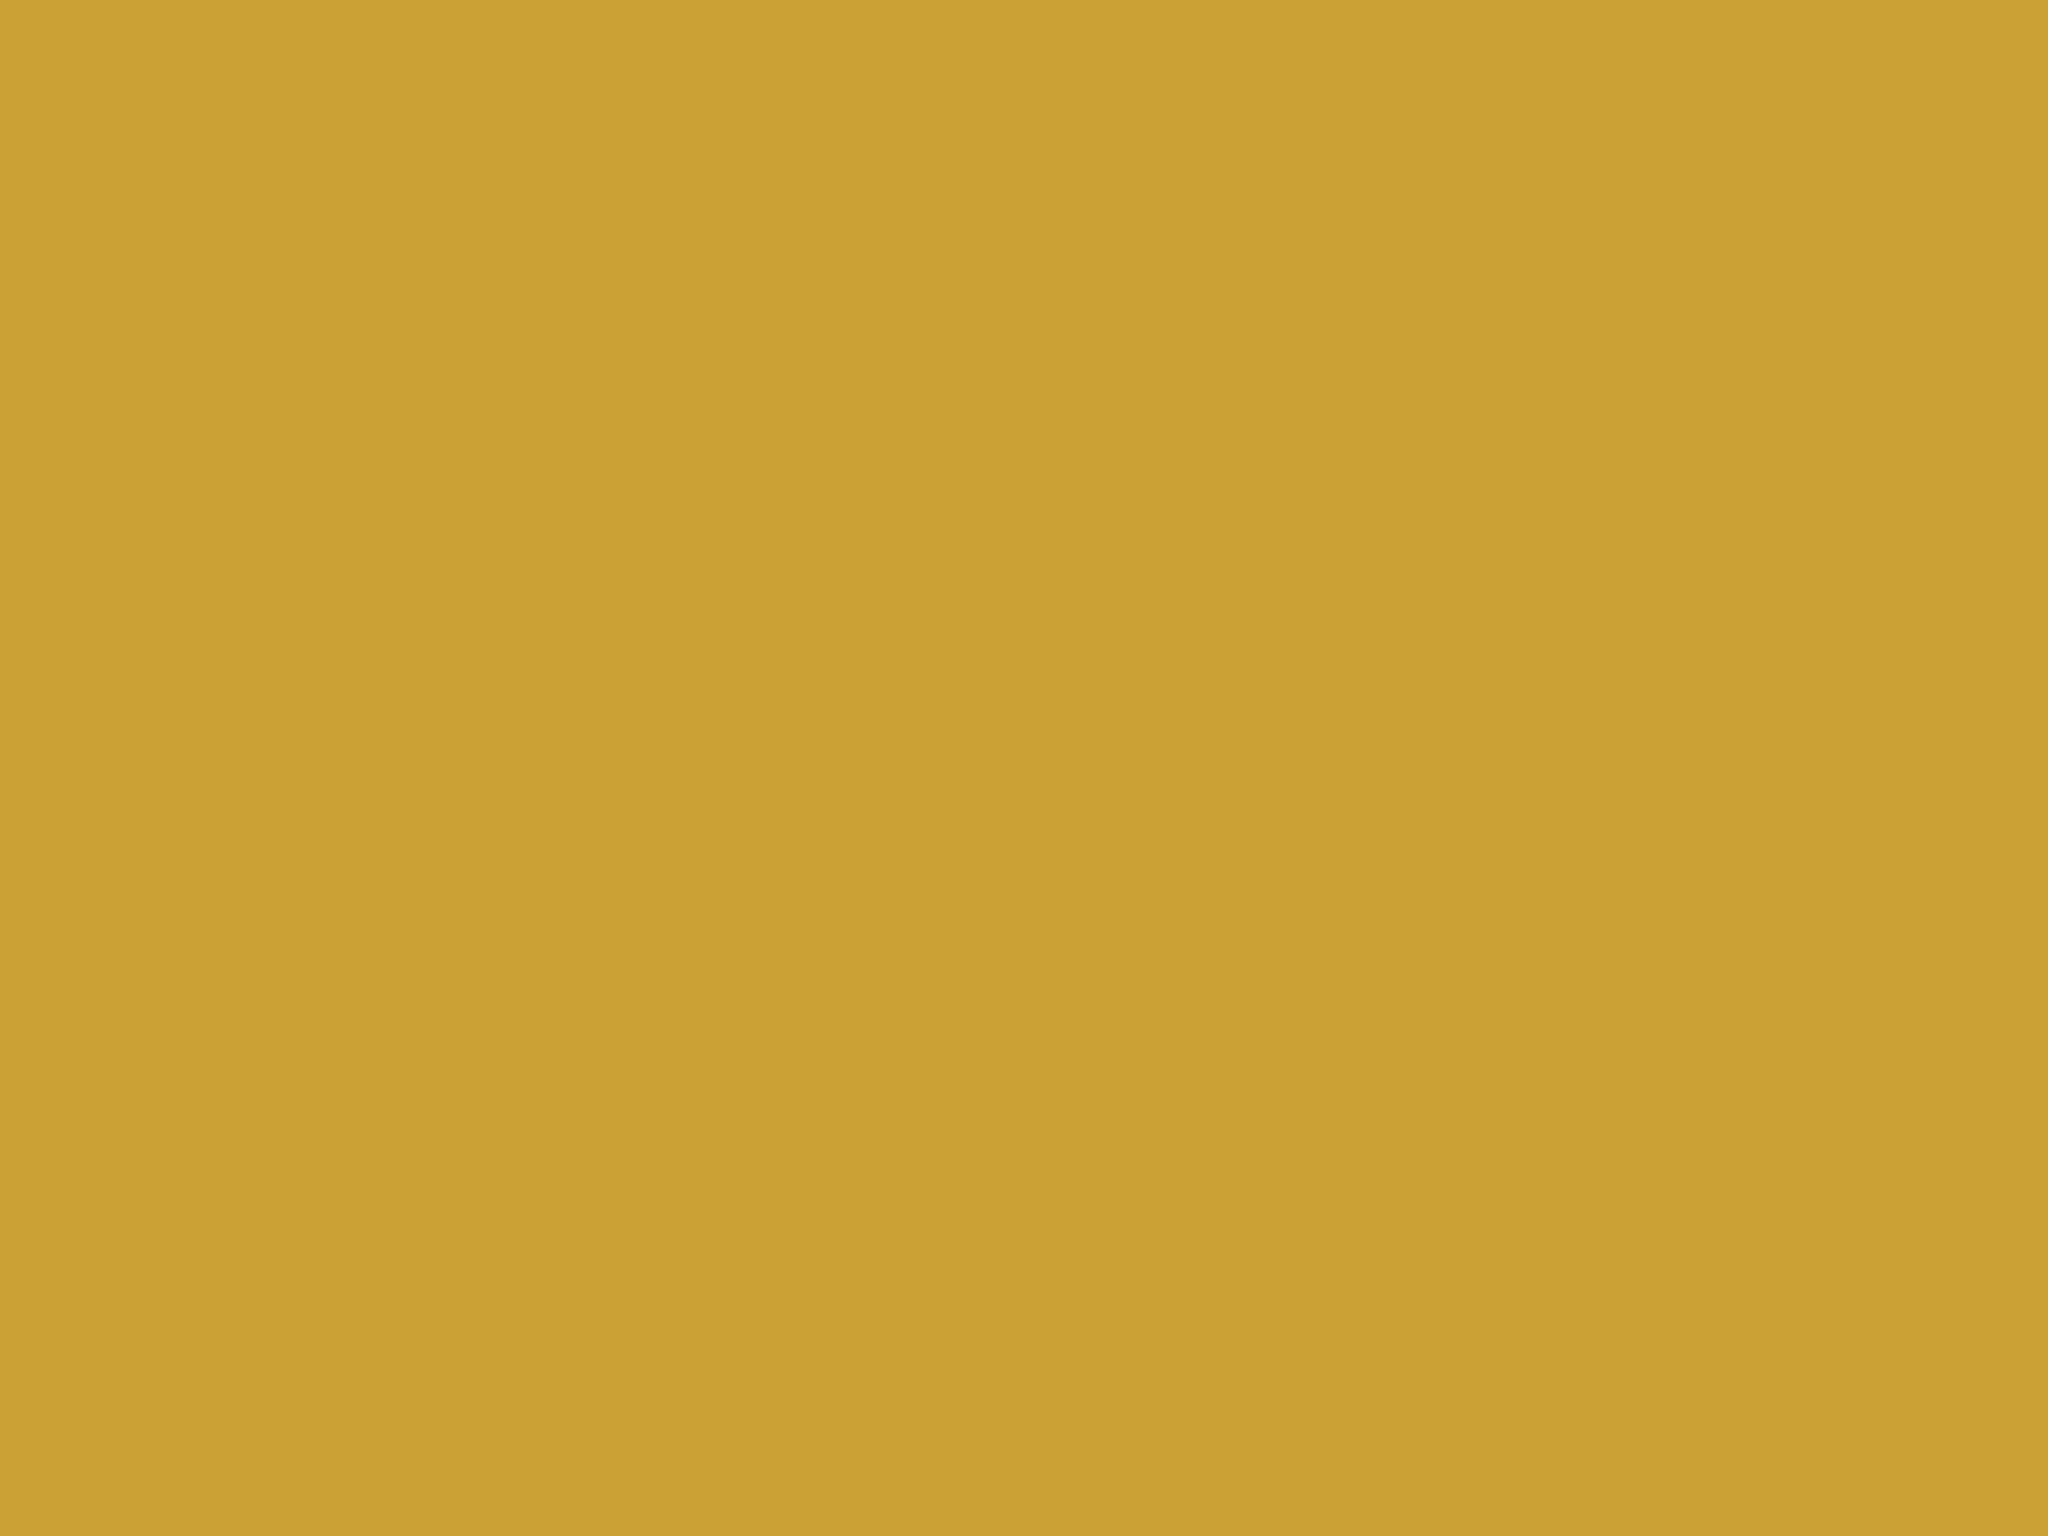 2048x1536 Satin Sheen Gold Solid Color Background